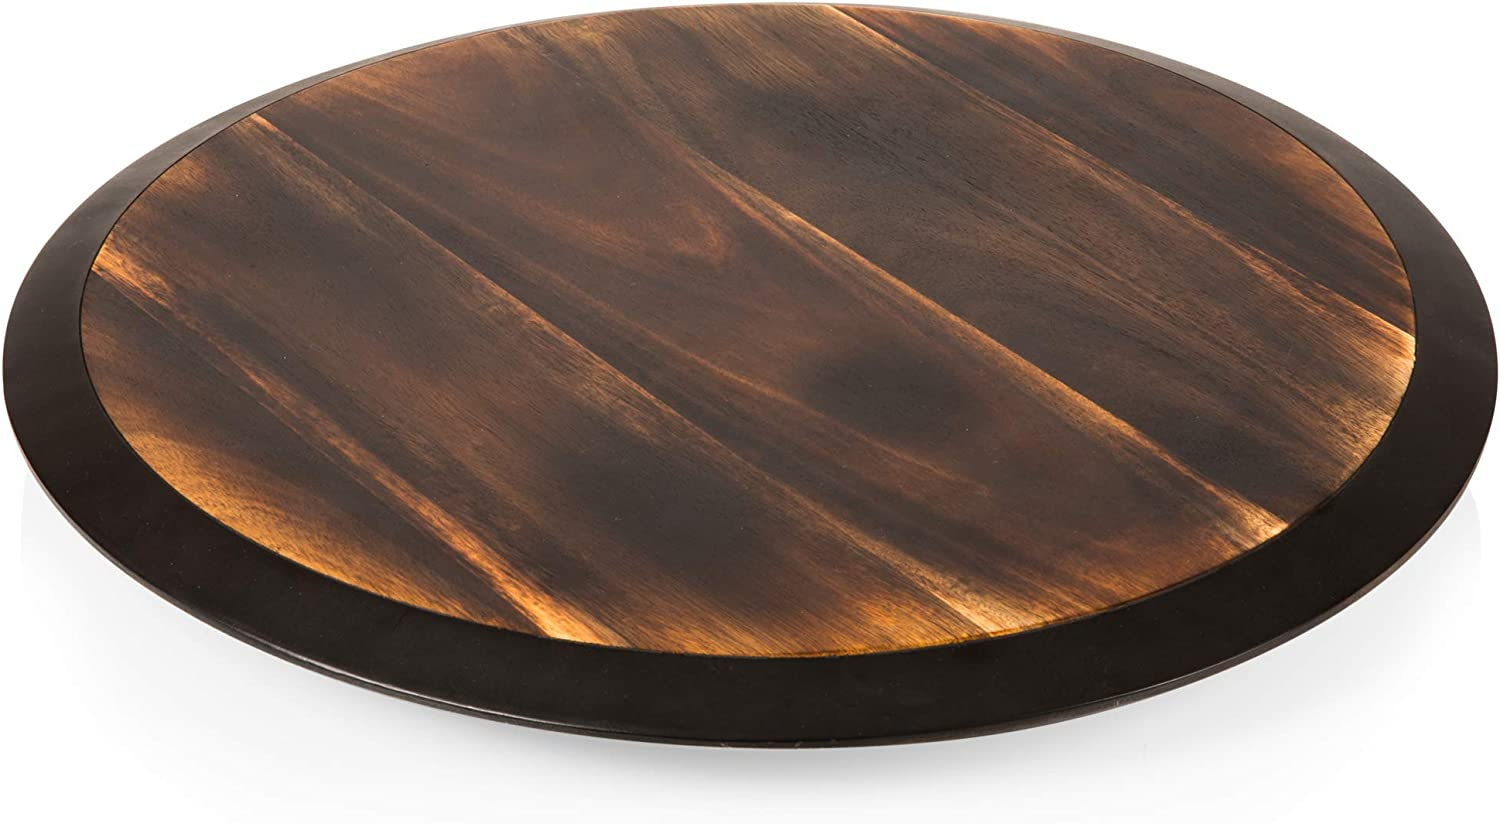 a Picnic Time brand 827-18-513-000-0 Lazy Susan Serving Tray One Size TOSCANA